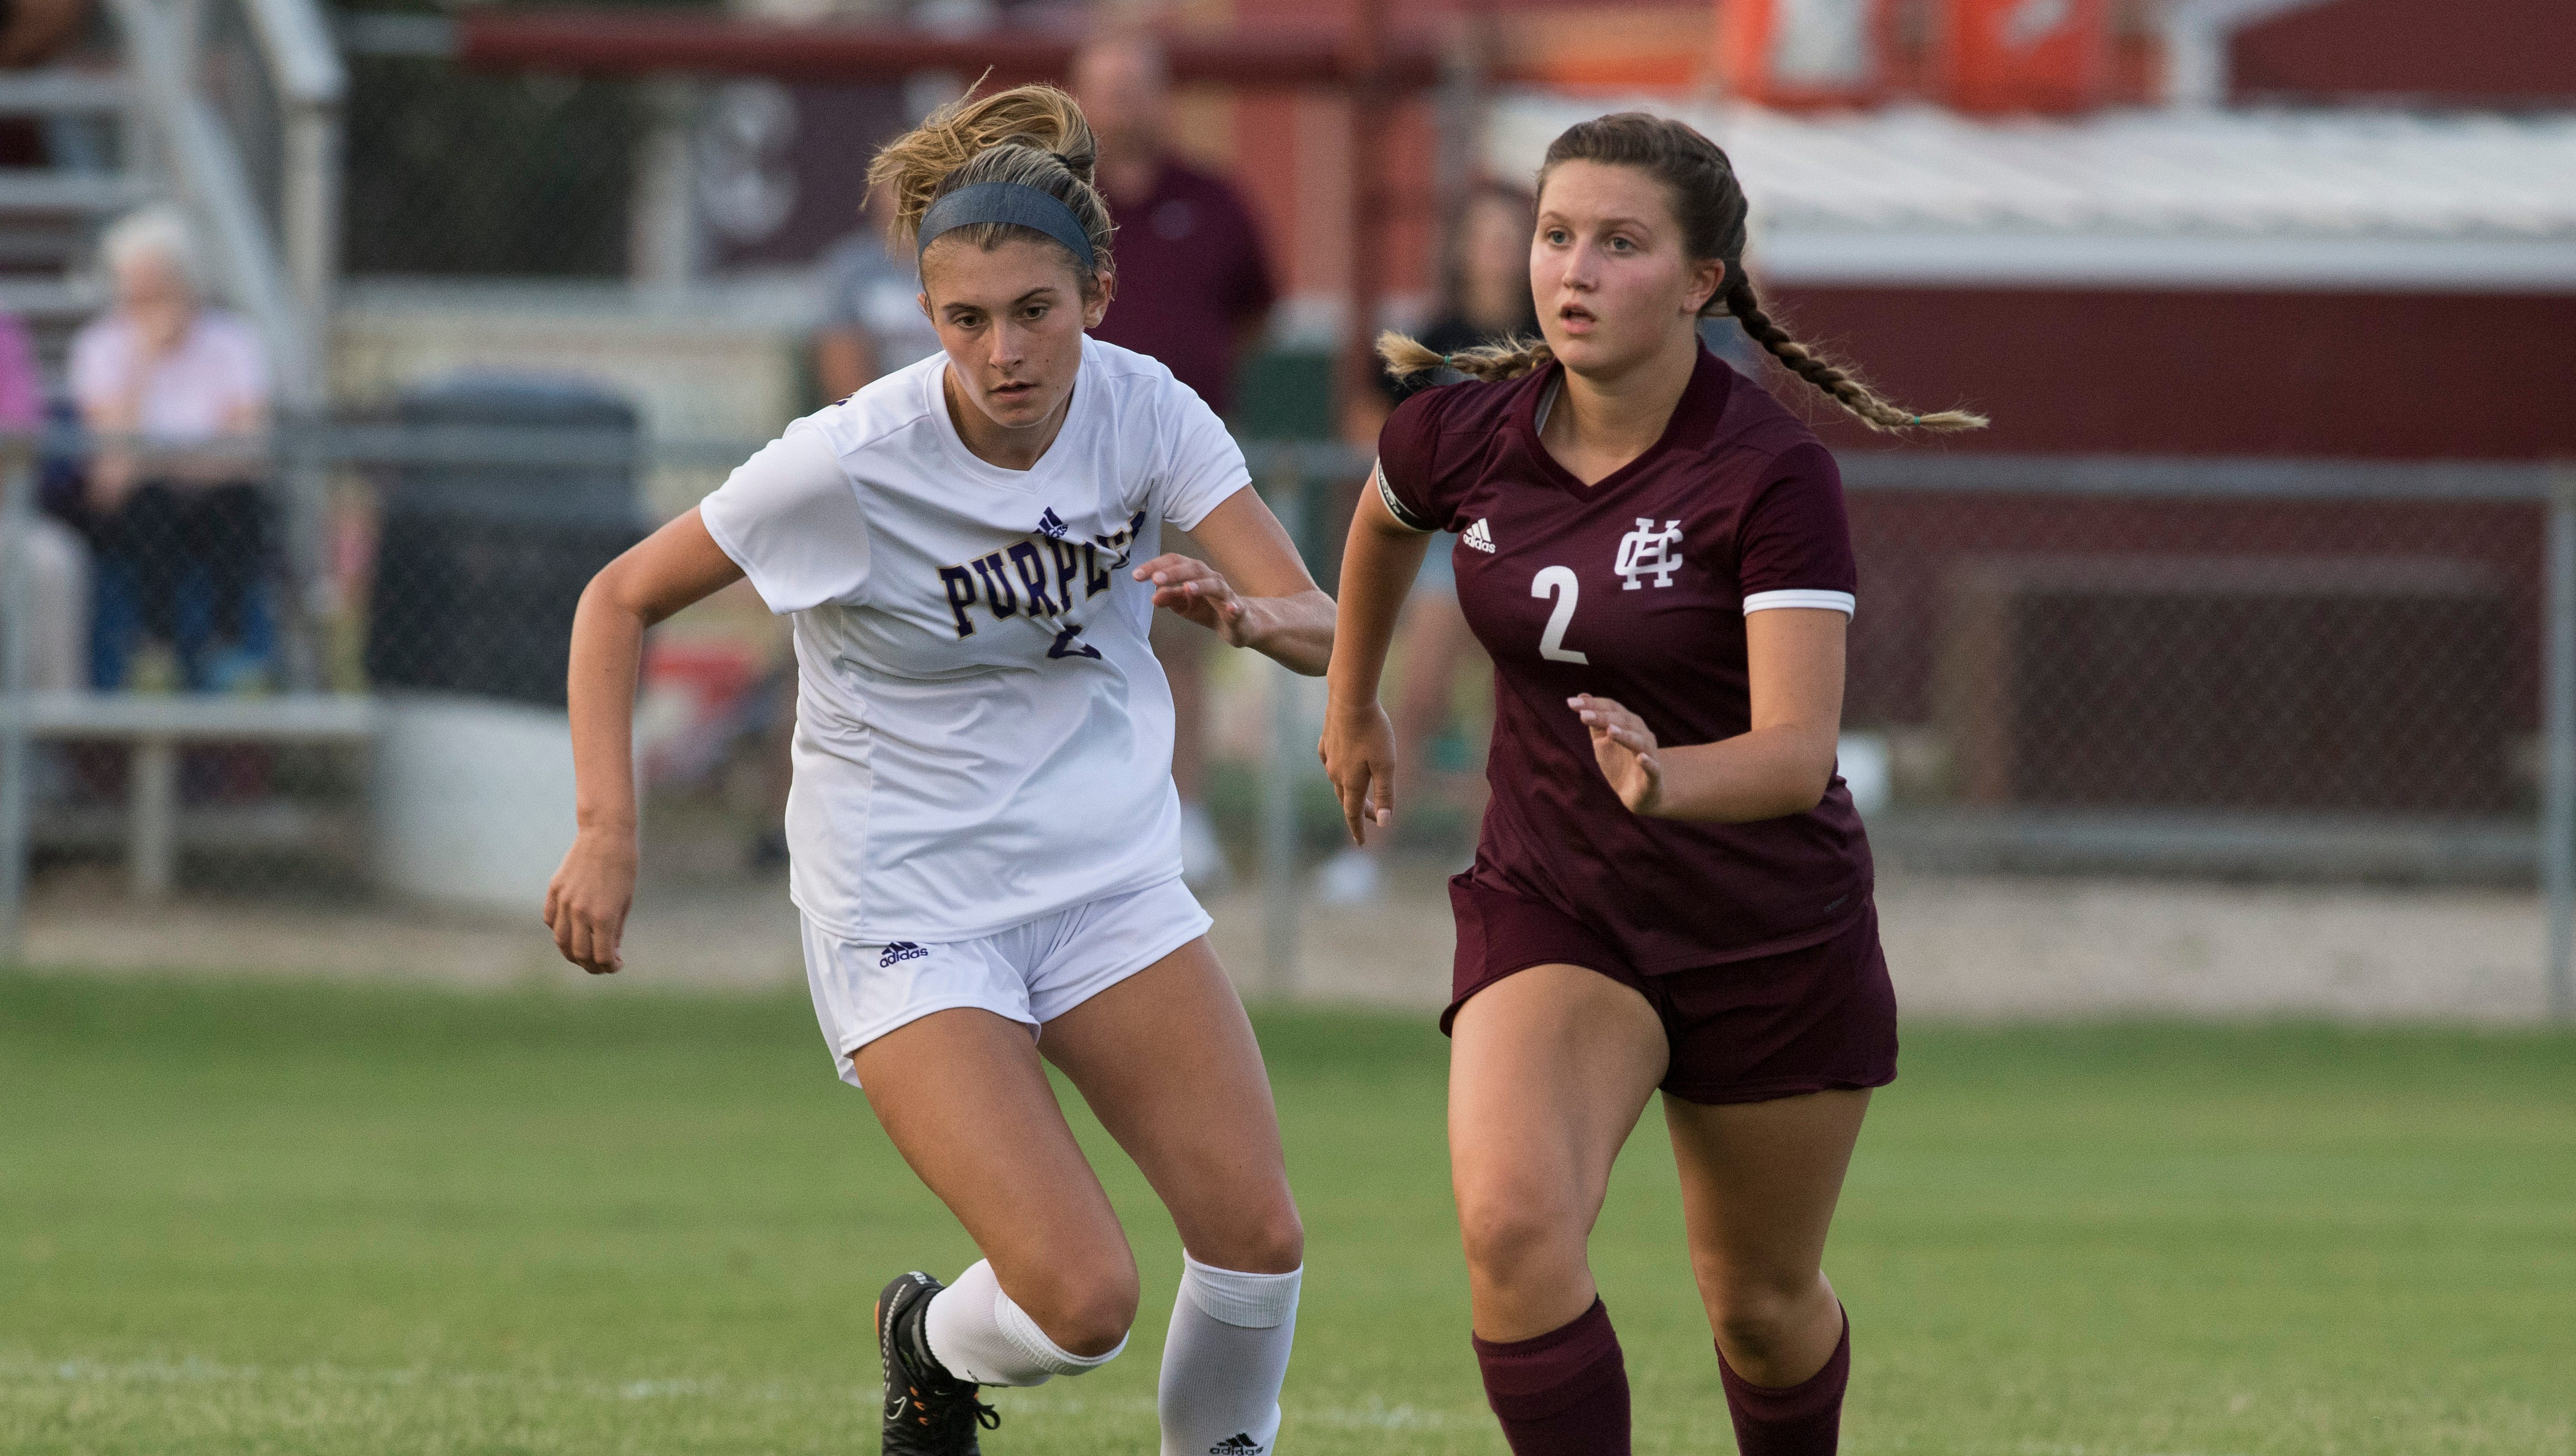 Henderson comes back for 2-2 tie in rematch of state tournament loss to Bowling Green